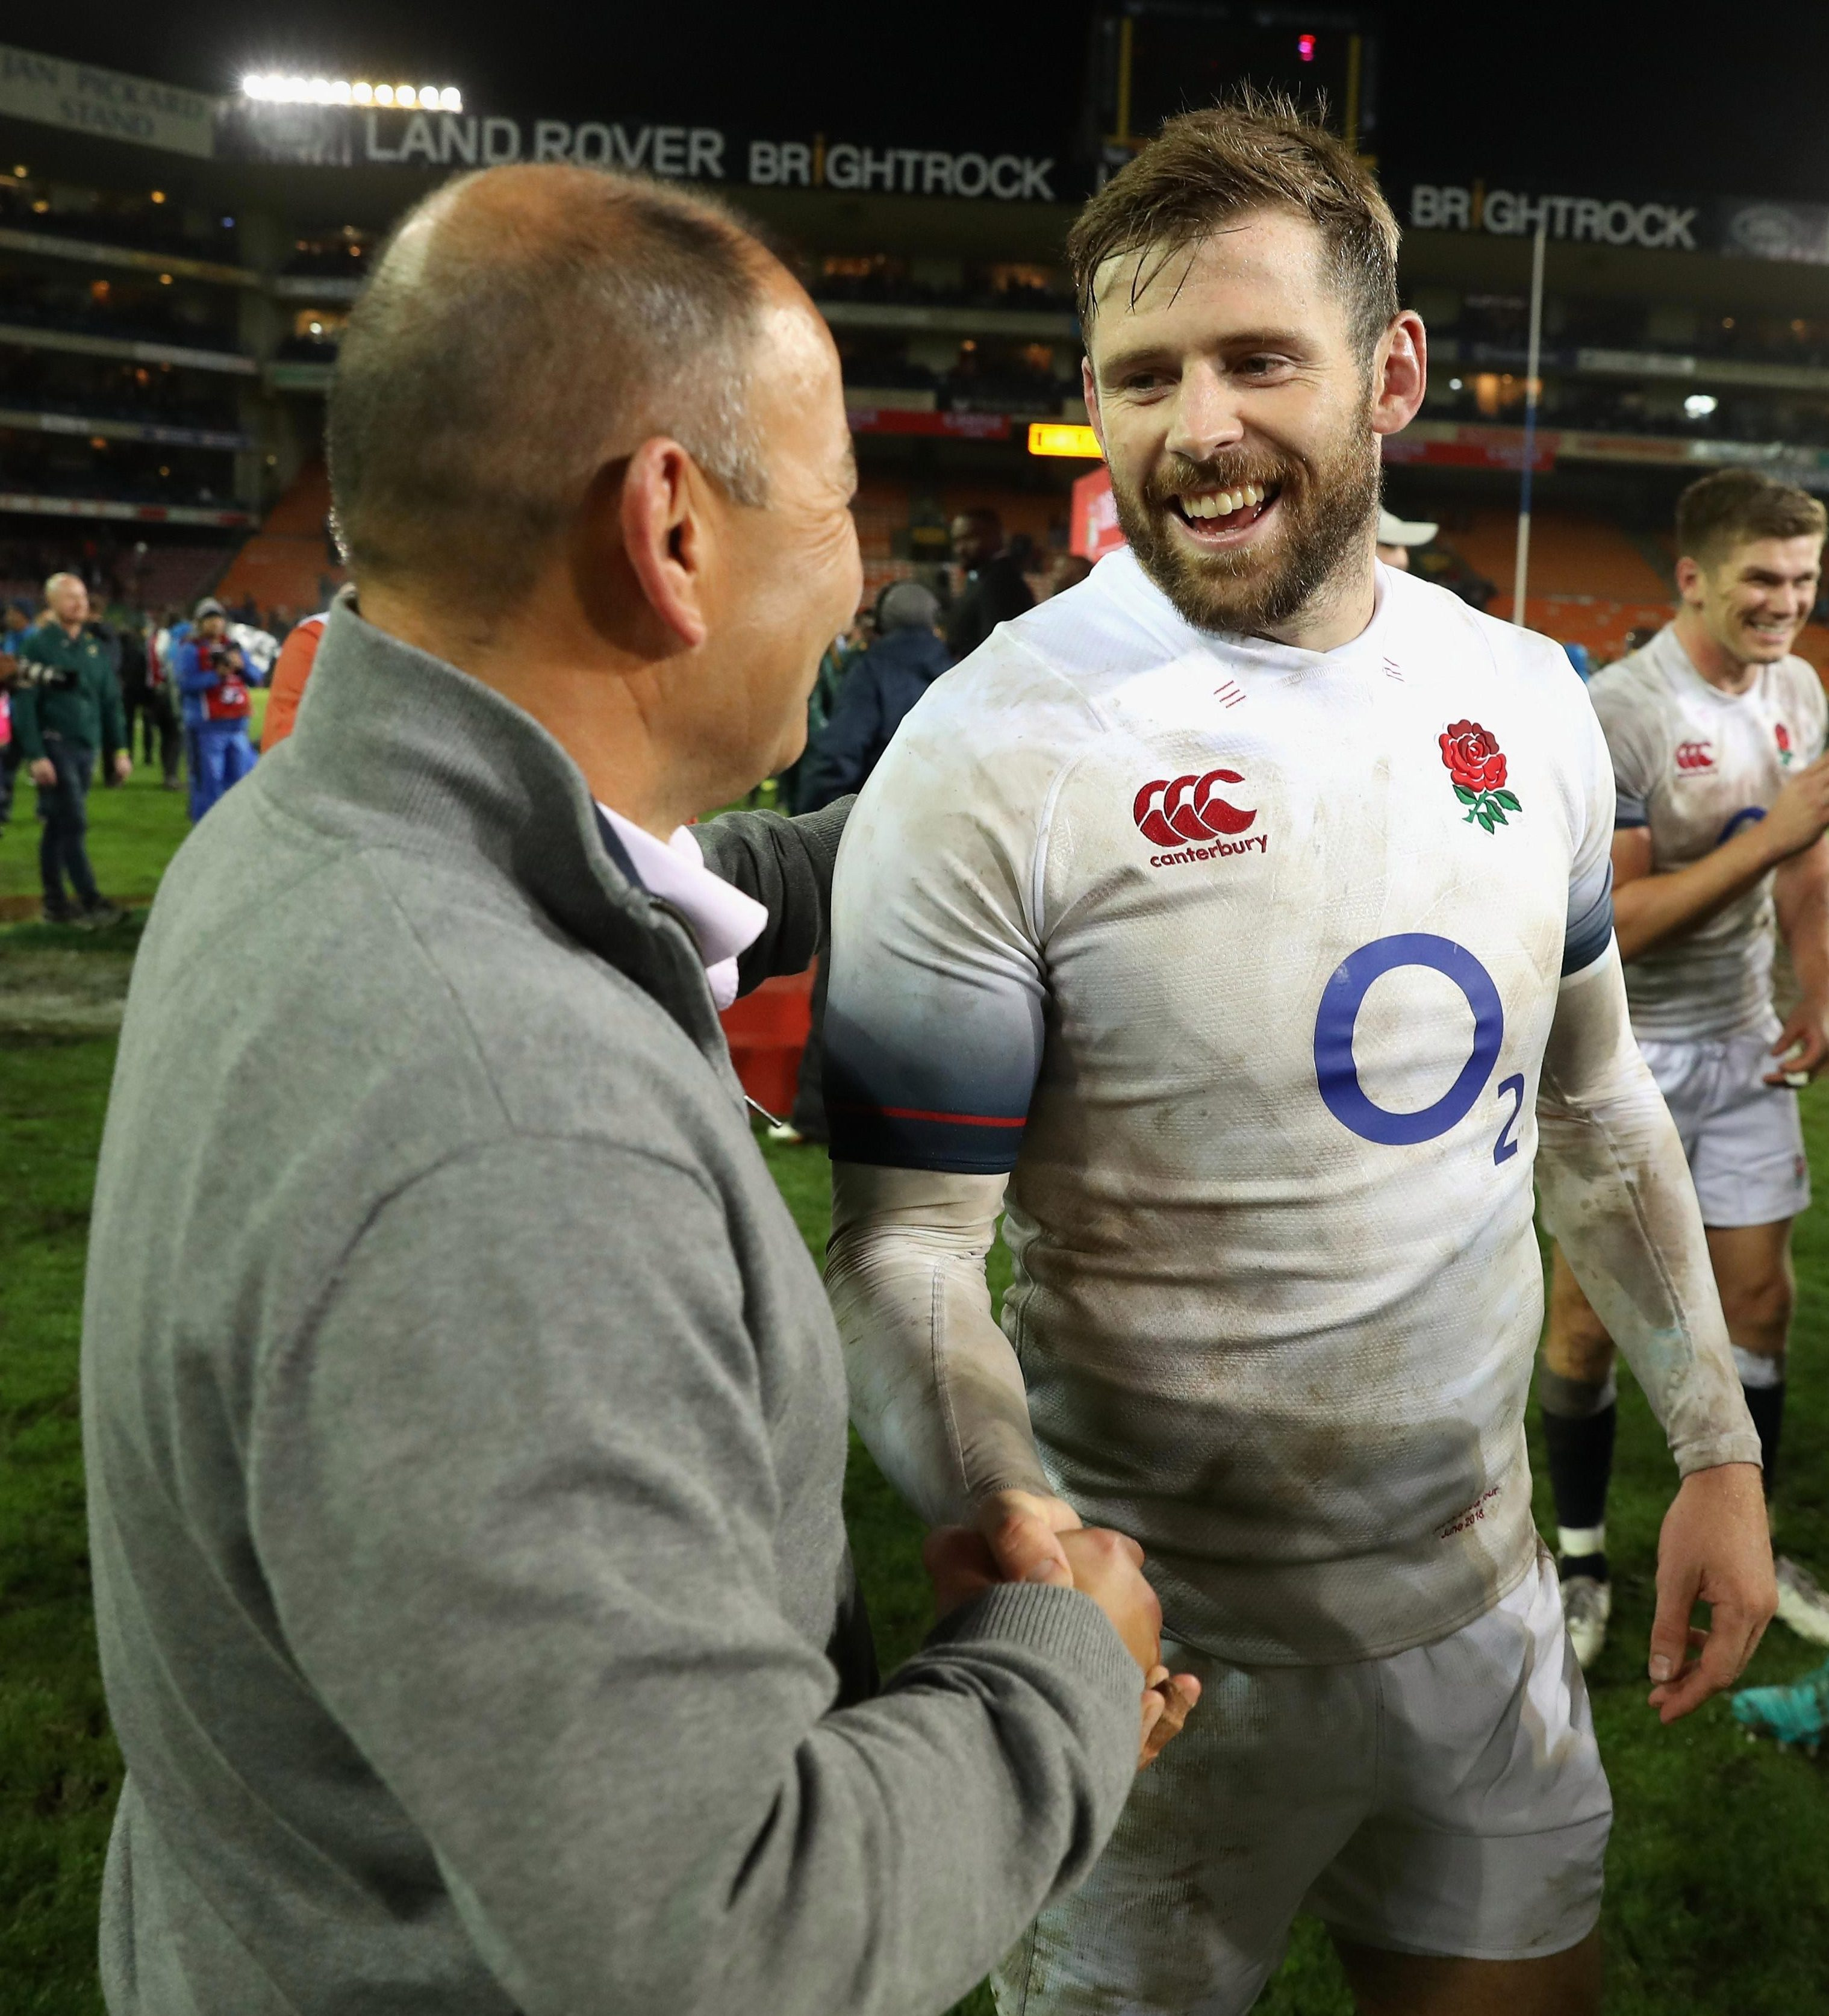 England beat South Africa 25-10 win in a dead-rubber Third Test on Saturday